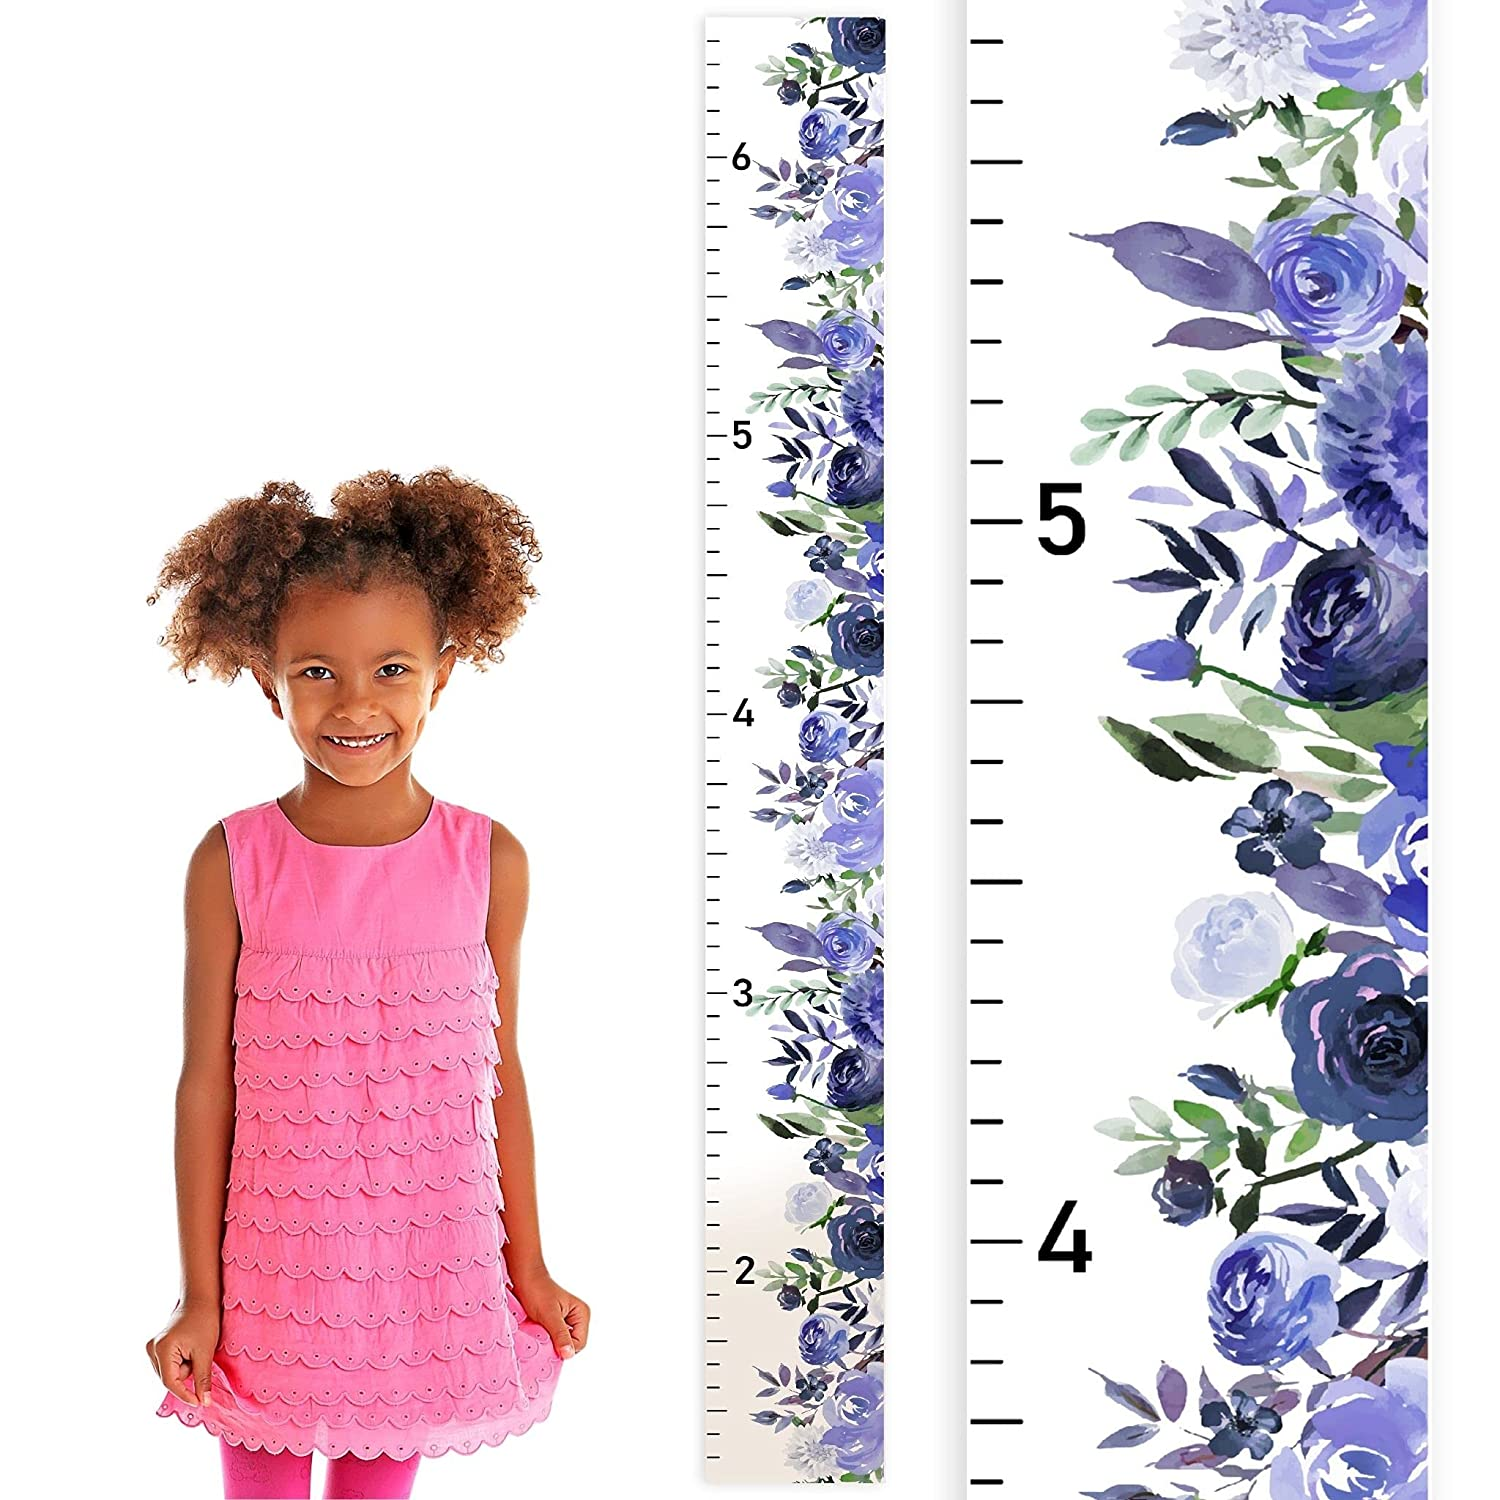 Flower Atlanta Mall Wood Growth Chart for Wooden SEAL limited product Girls Height Kid